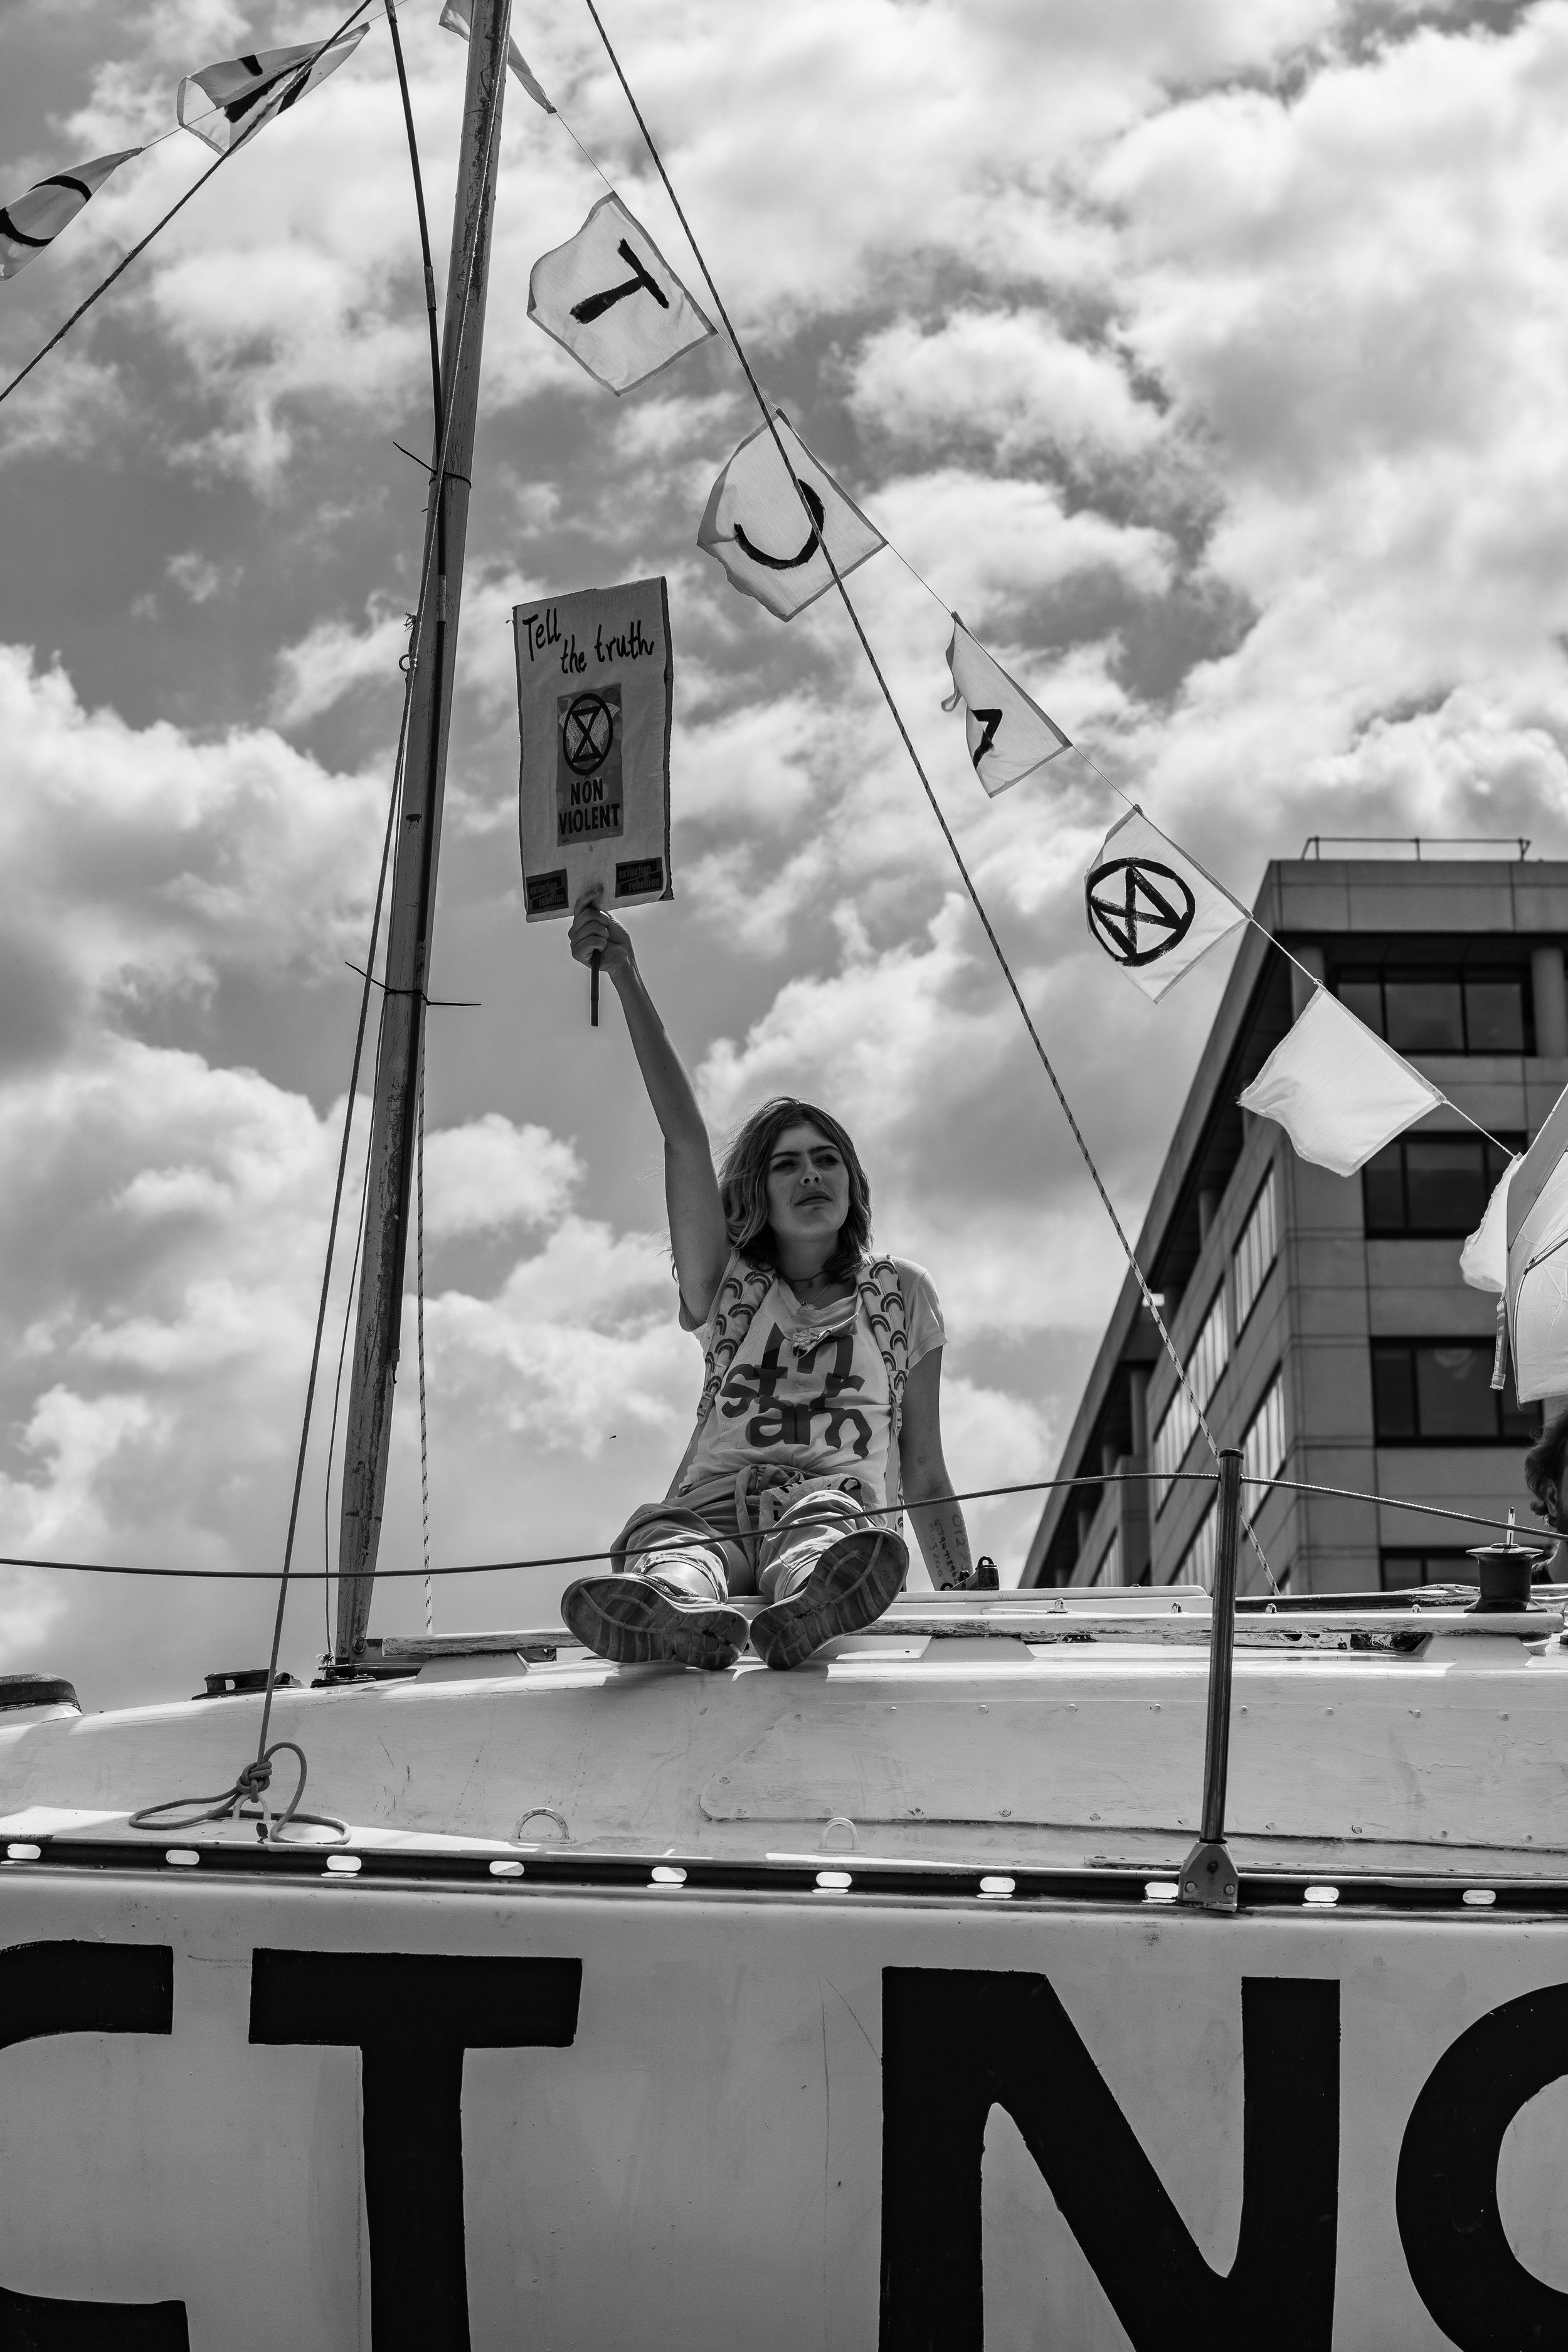 A protester sat on the boat - Image is copyrighted.